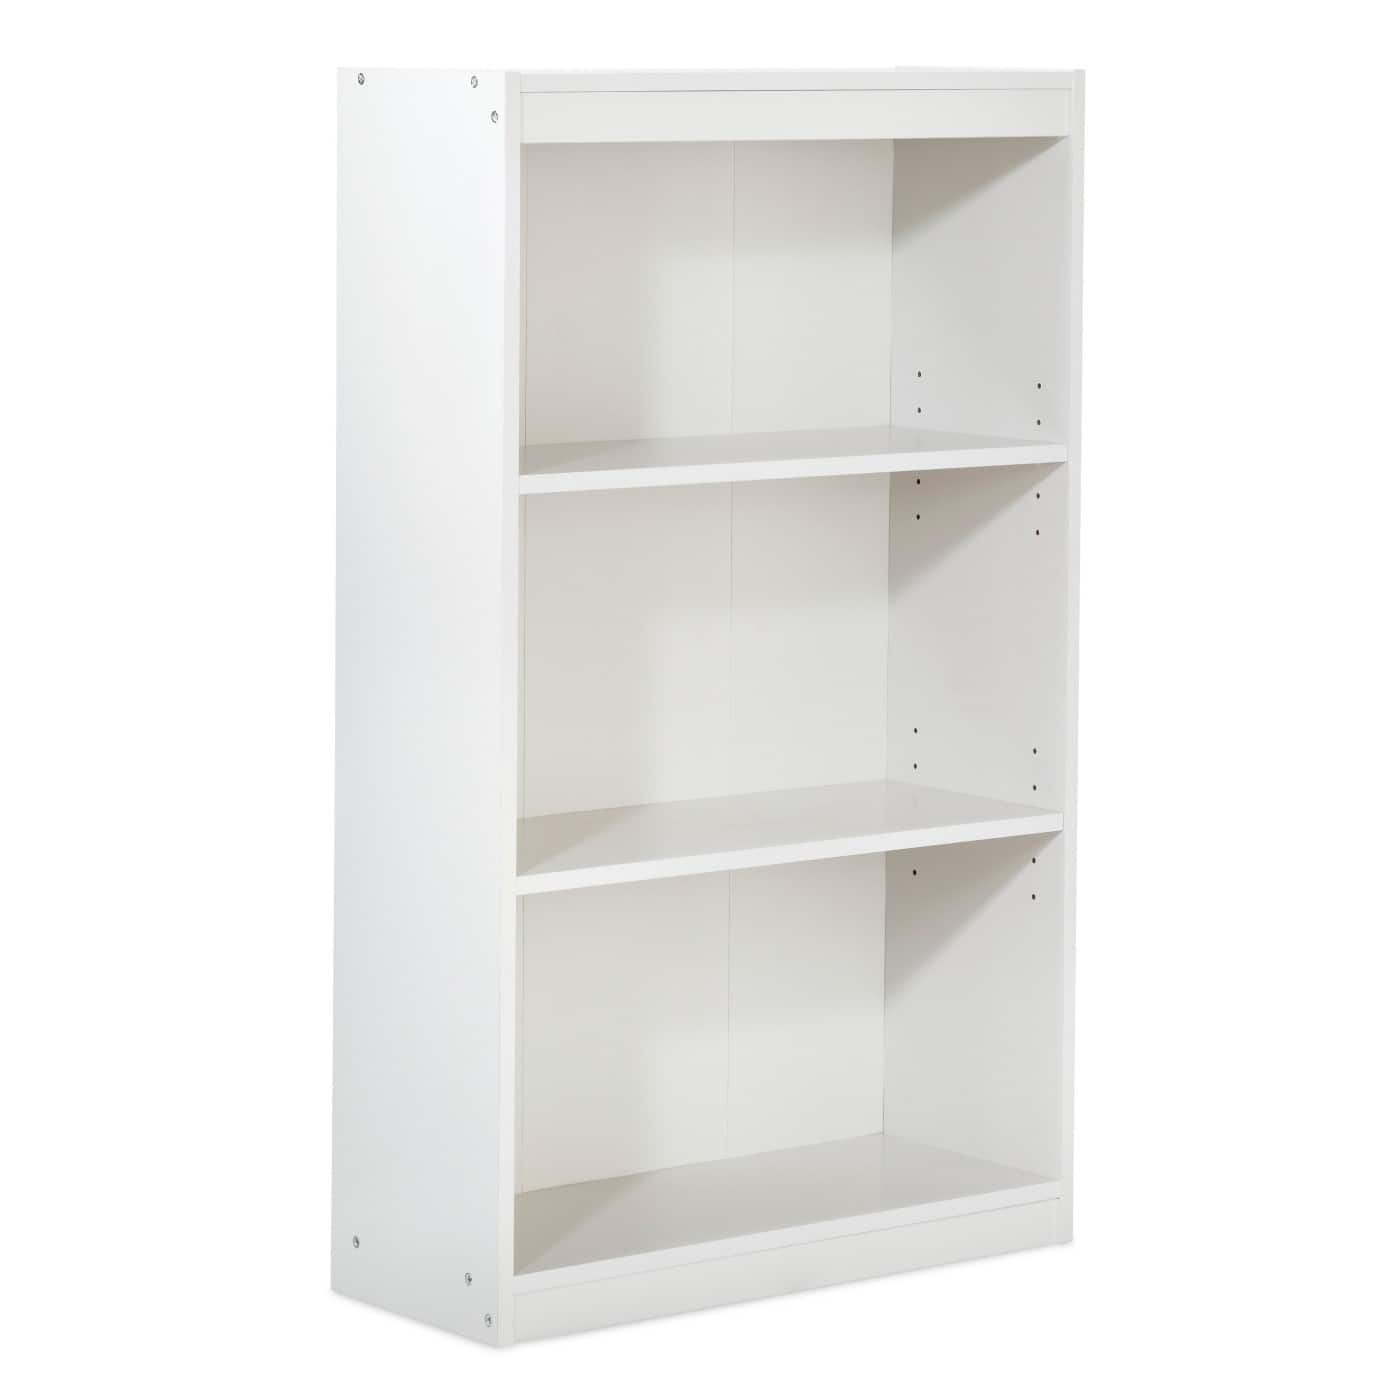 overstock eco bookcase storage lifetime shipping guarantee basics product shelf way today narrow free home by camden garden